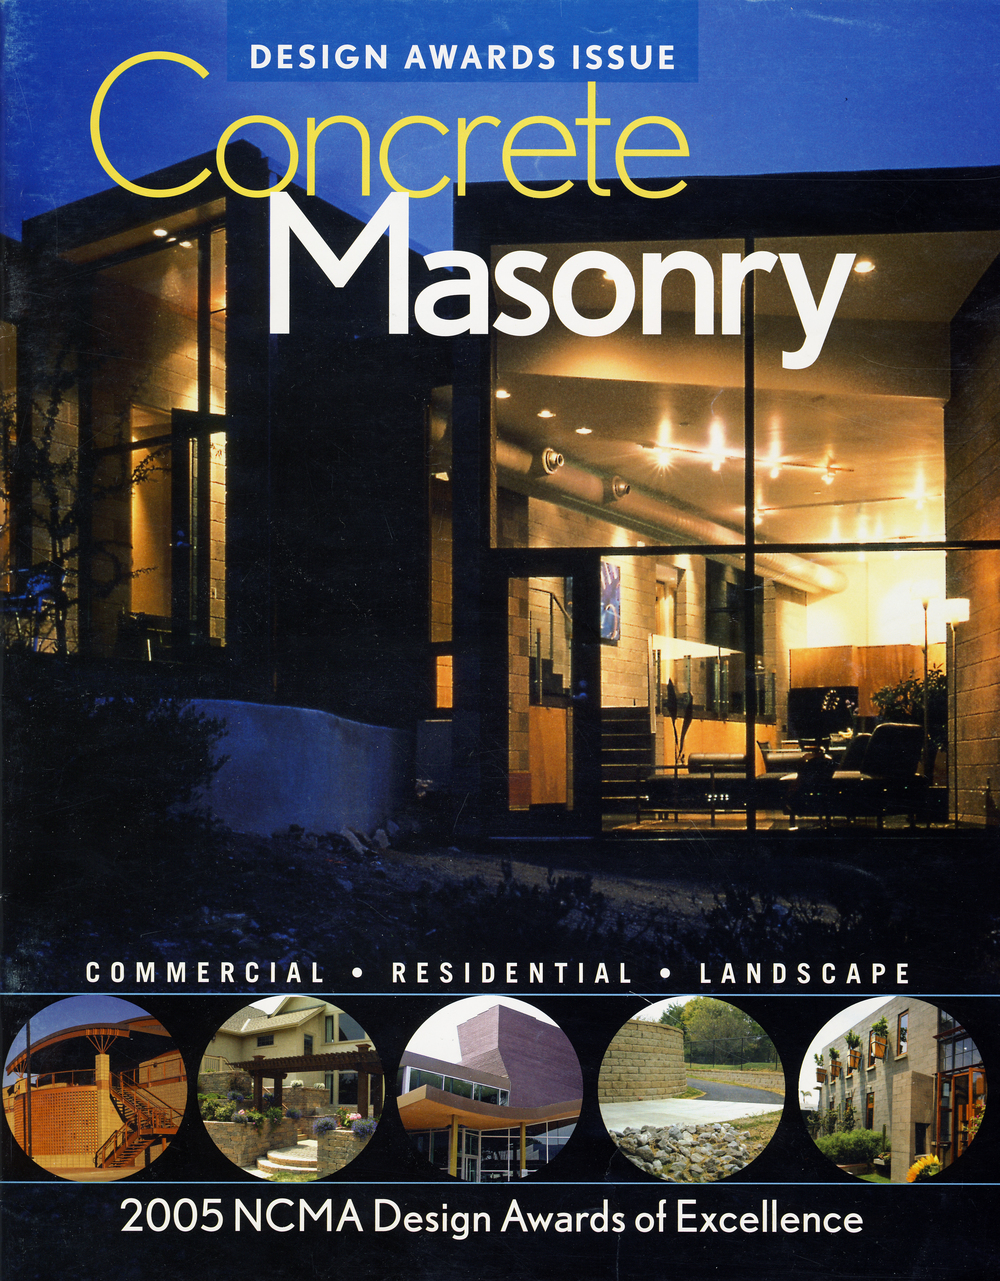 concrete masonry design awards issue 2005.jpg